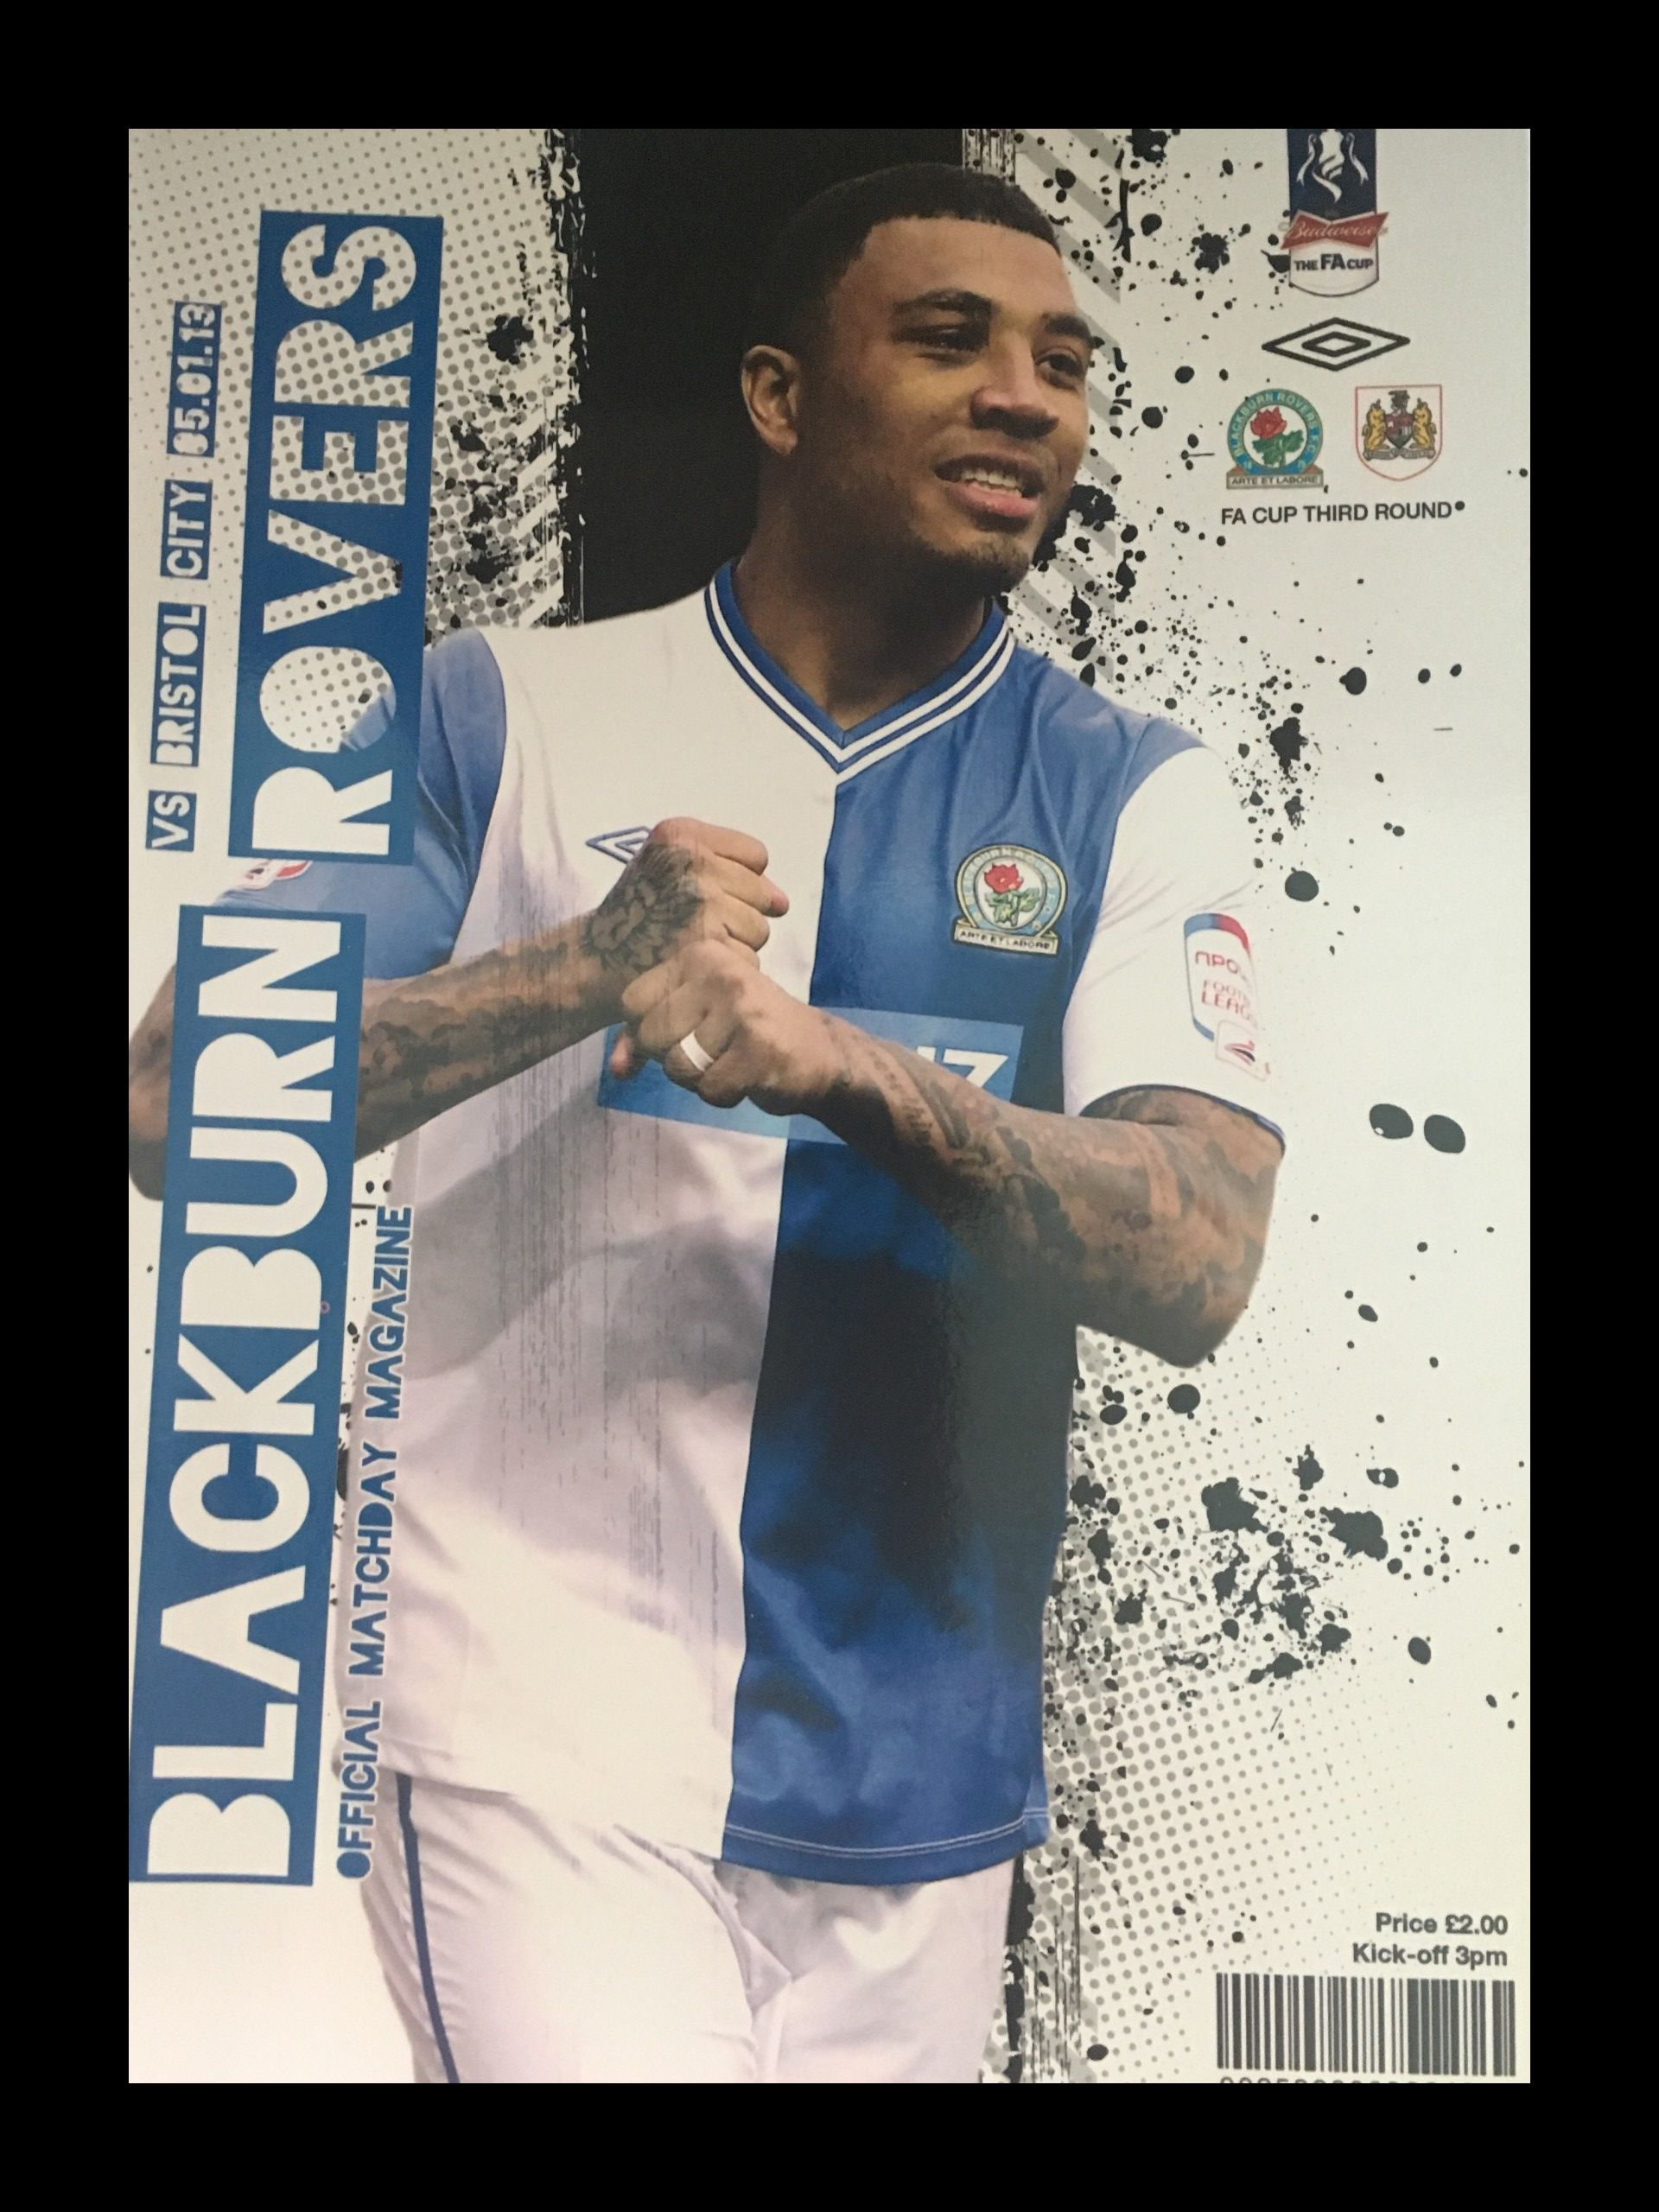 Blackburn Rovers v Bristol City 05-01-2013 Programme